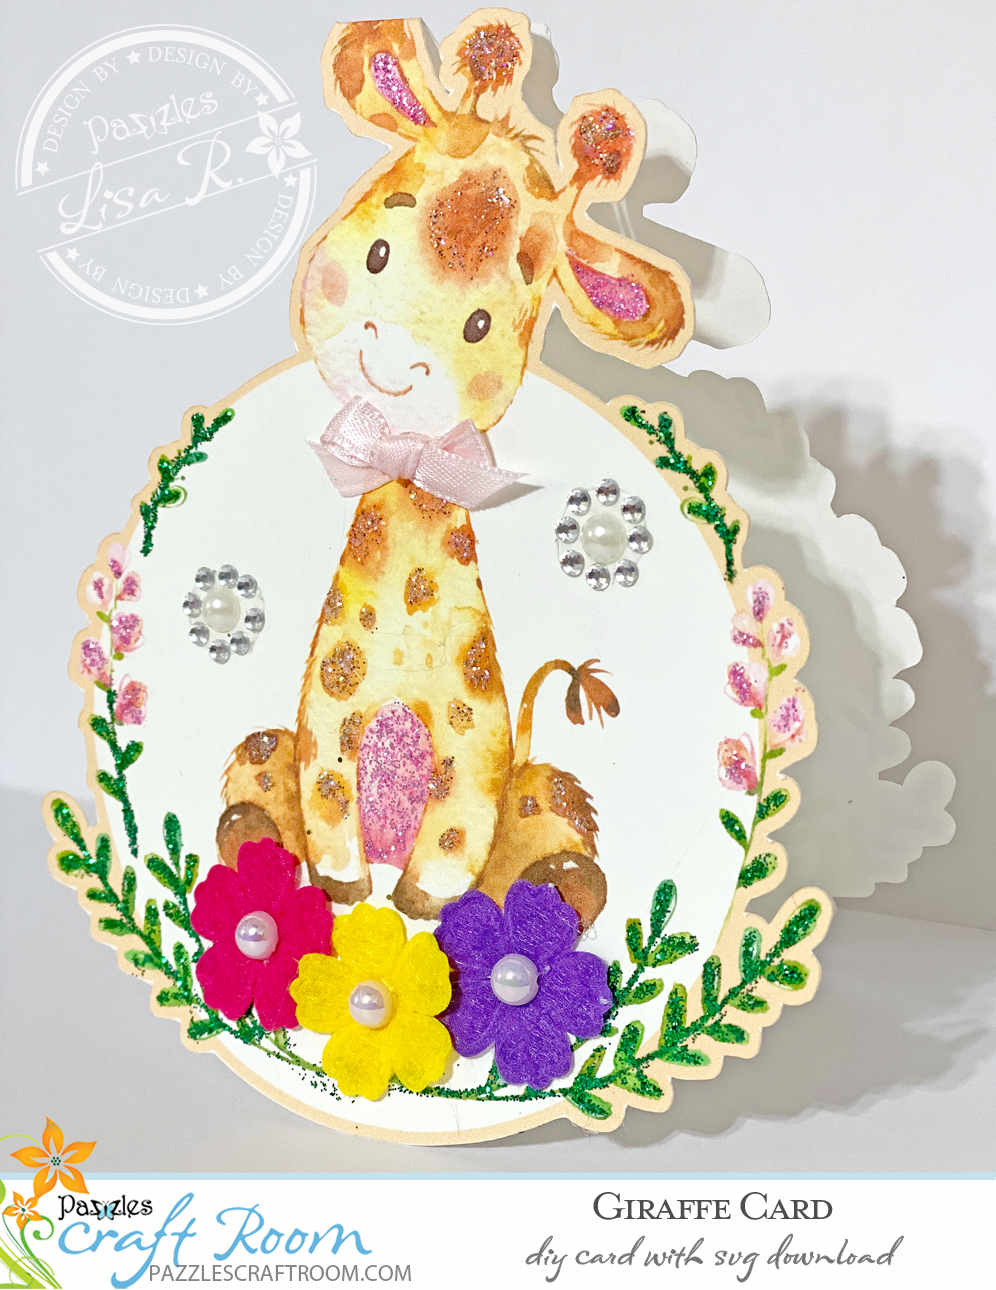 Pazzles DIY Giraffe Card with instant SVG download. Compatible with all major electronic cutters including Pazzles Inspiration, Cricut, and Silhouette Cameo. Design by Lisa Reyna.